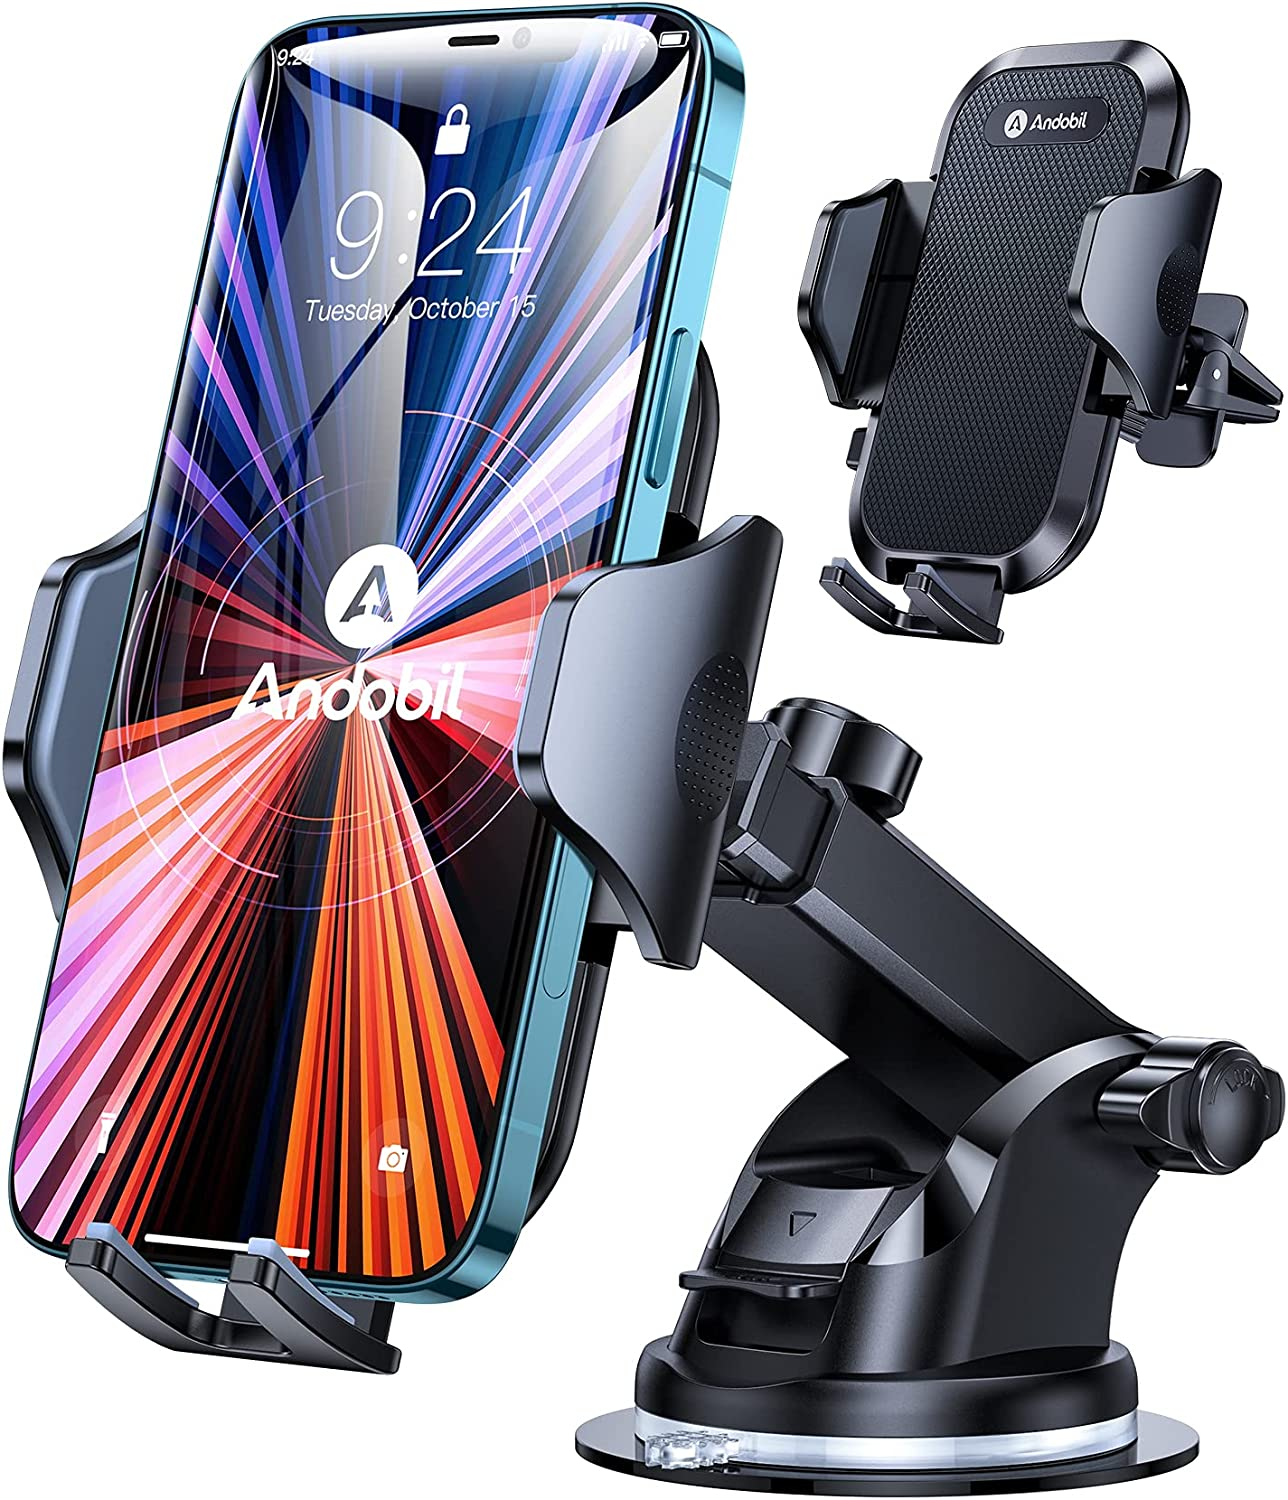 Andobil smartphone holder, why car don't have phone holder